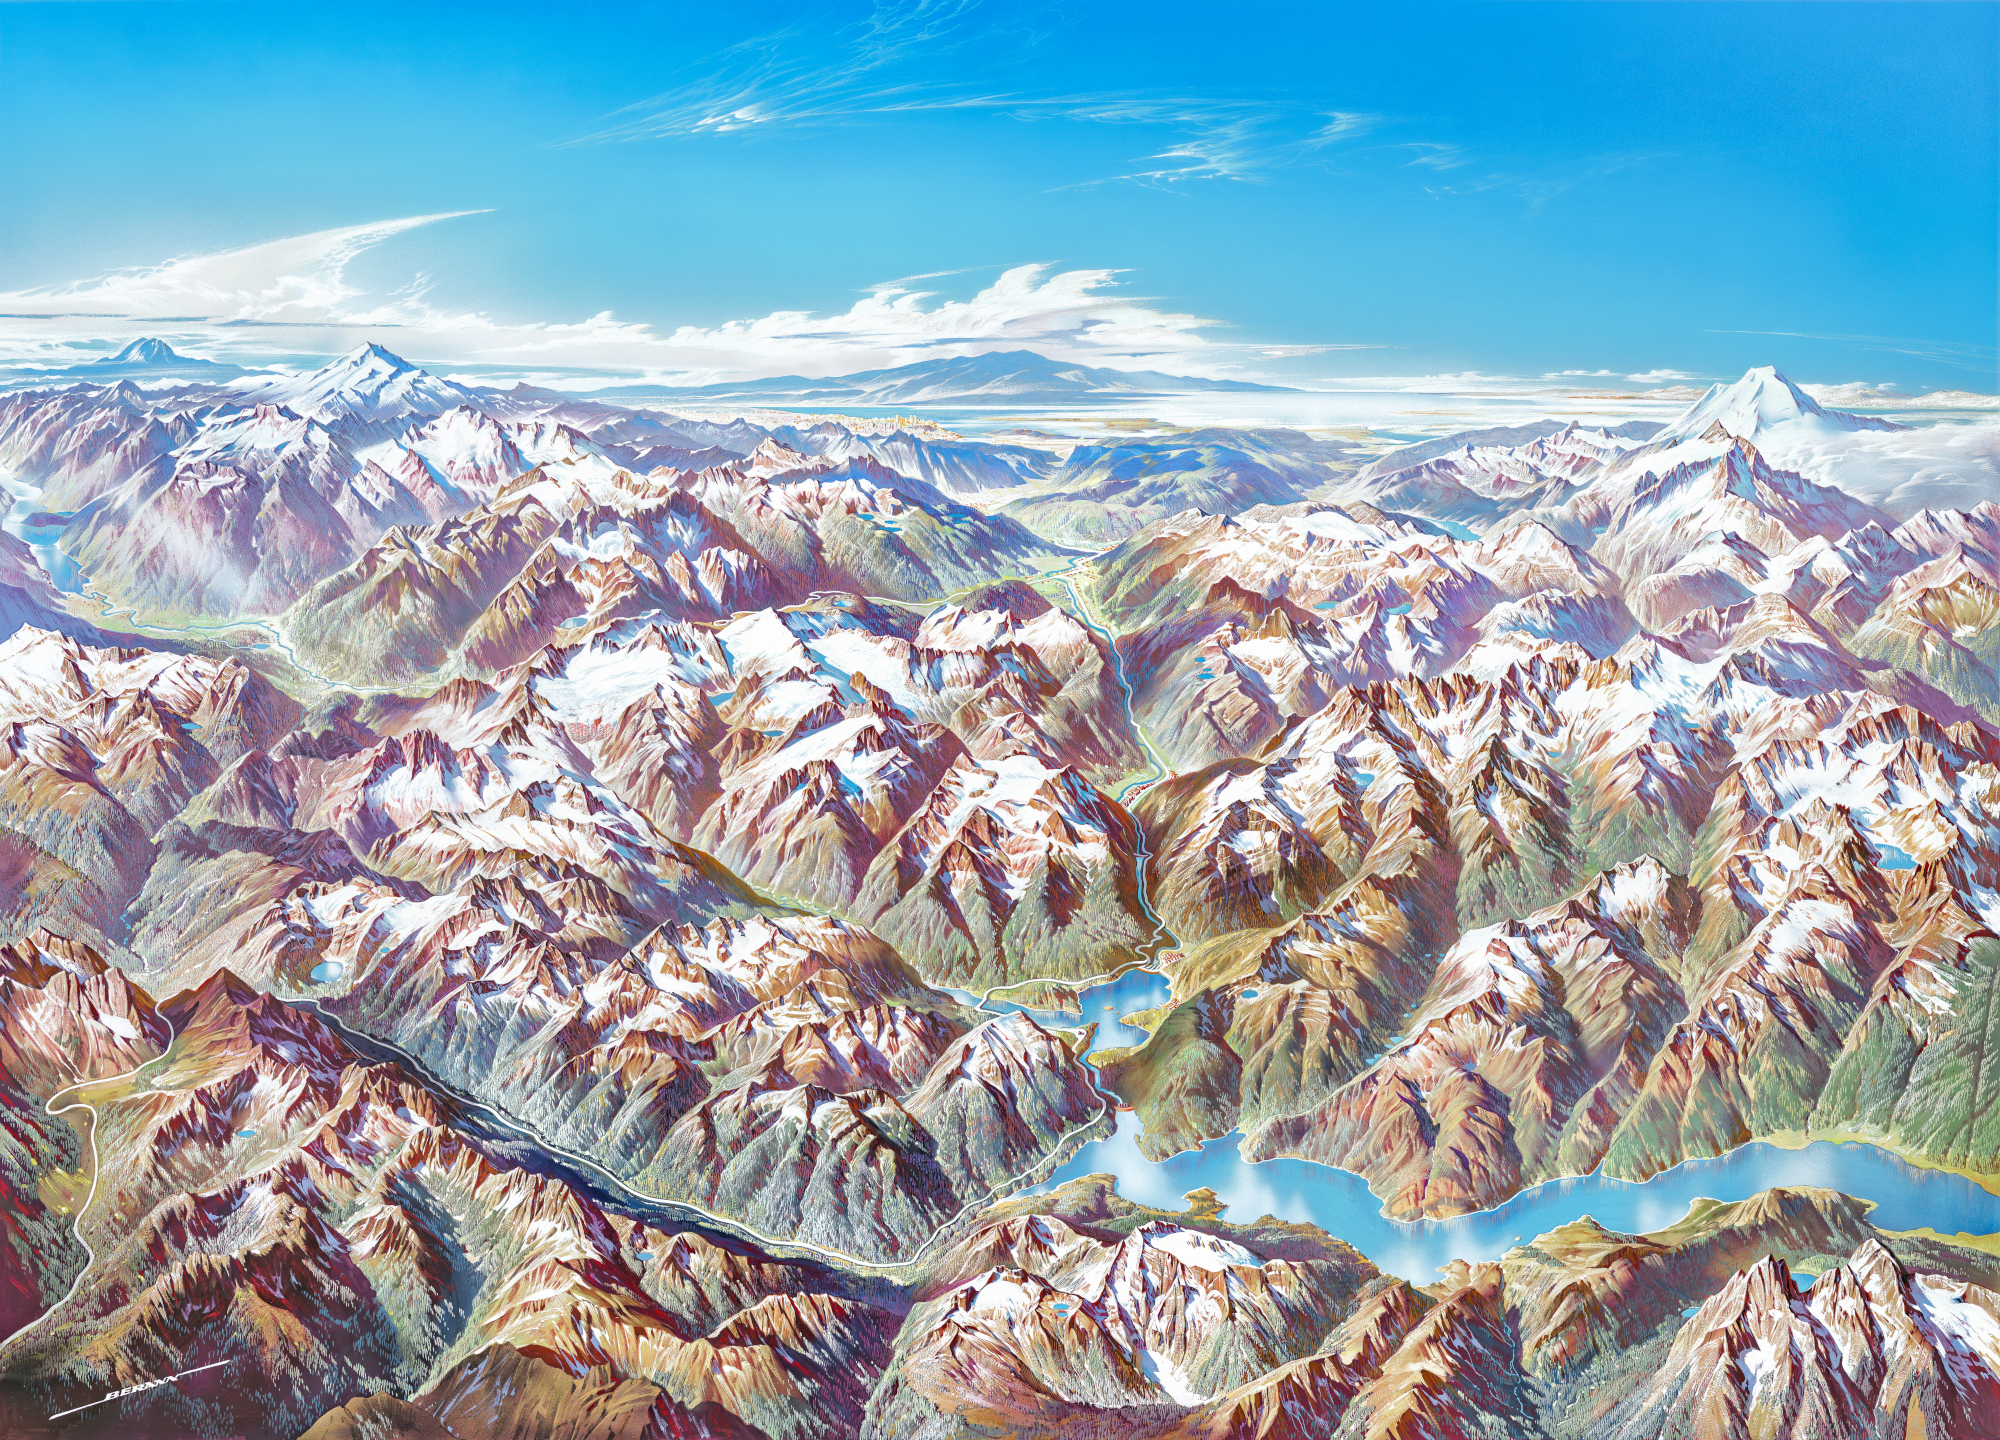 National Parks Service Publishes Hi Rez Scans Of Heinrich Berann S Iconic Panoramic Paintings Of America S Parks Boing Boing